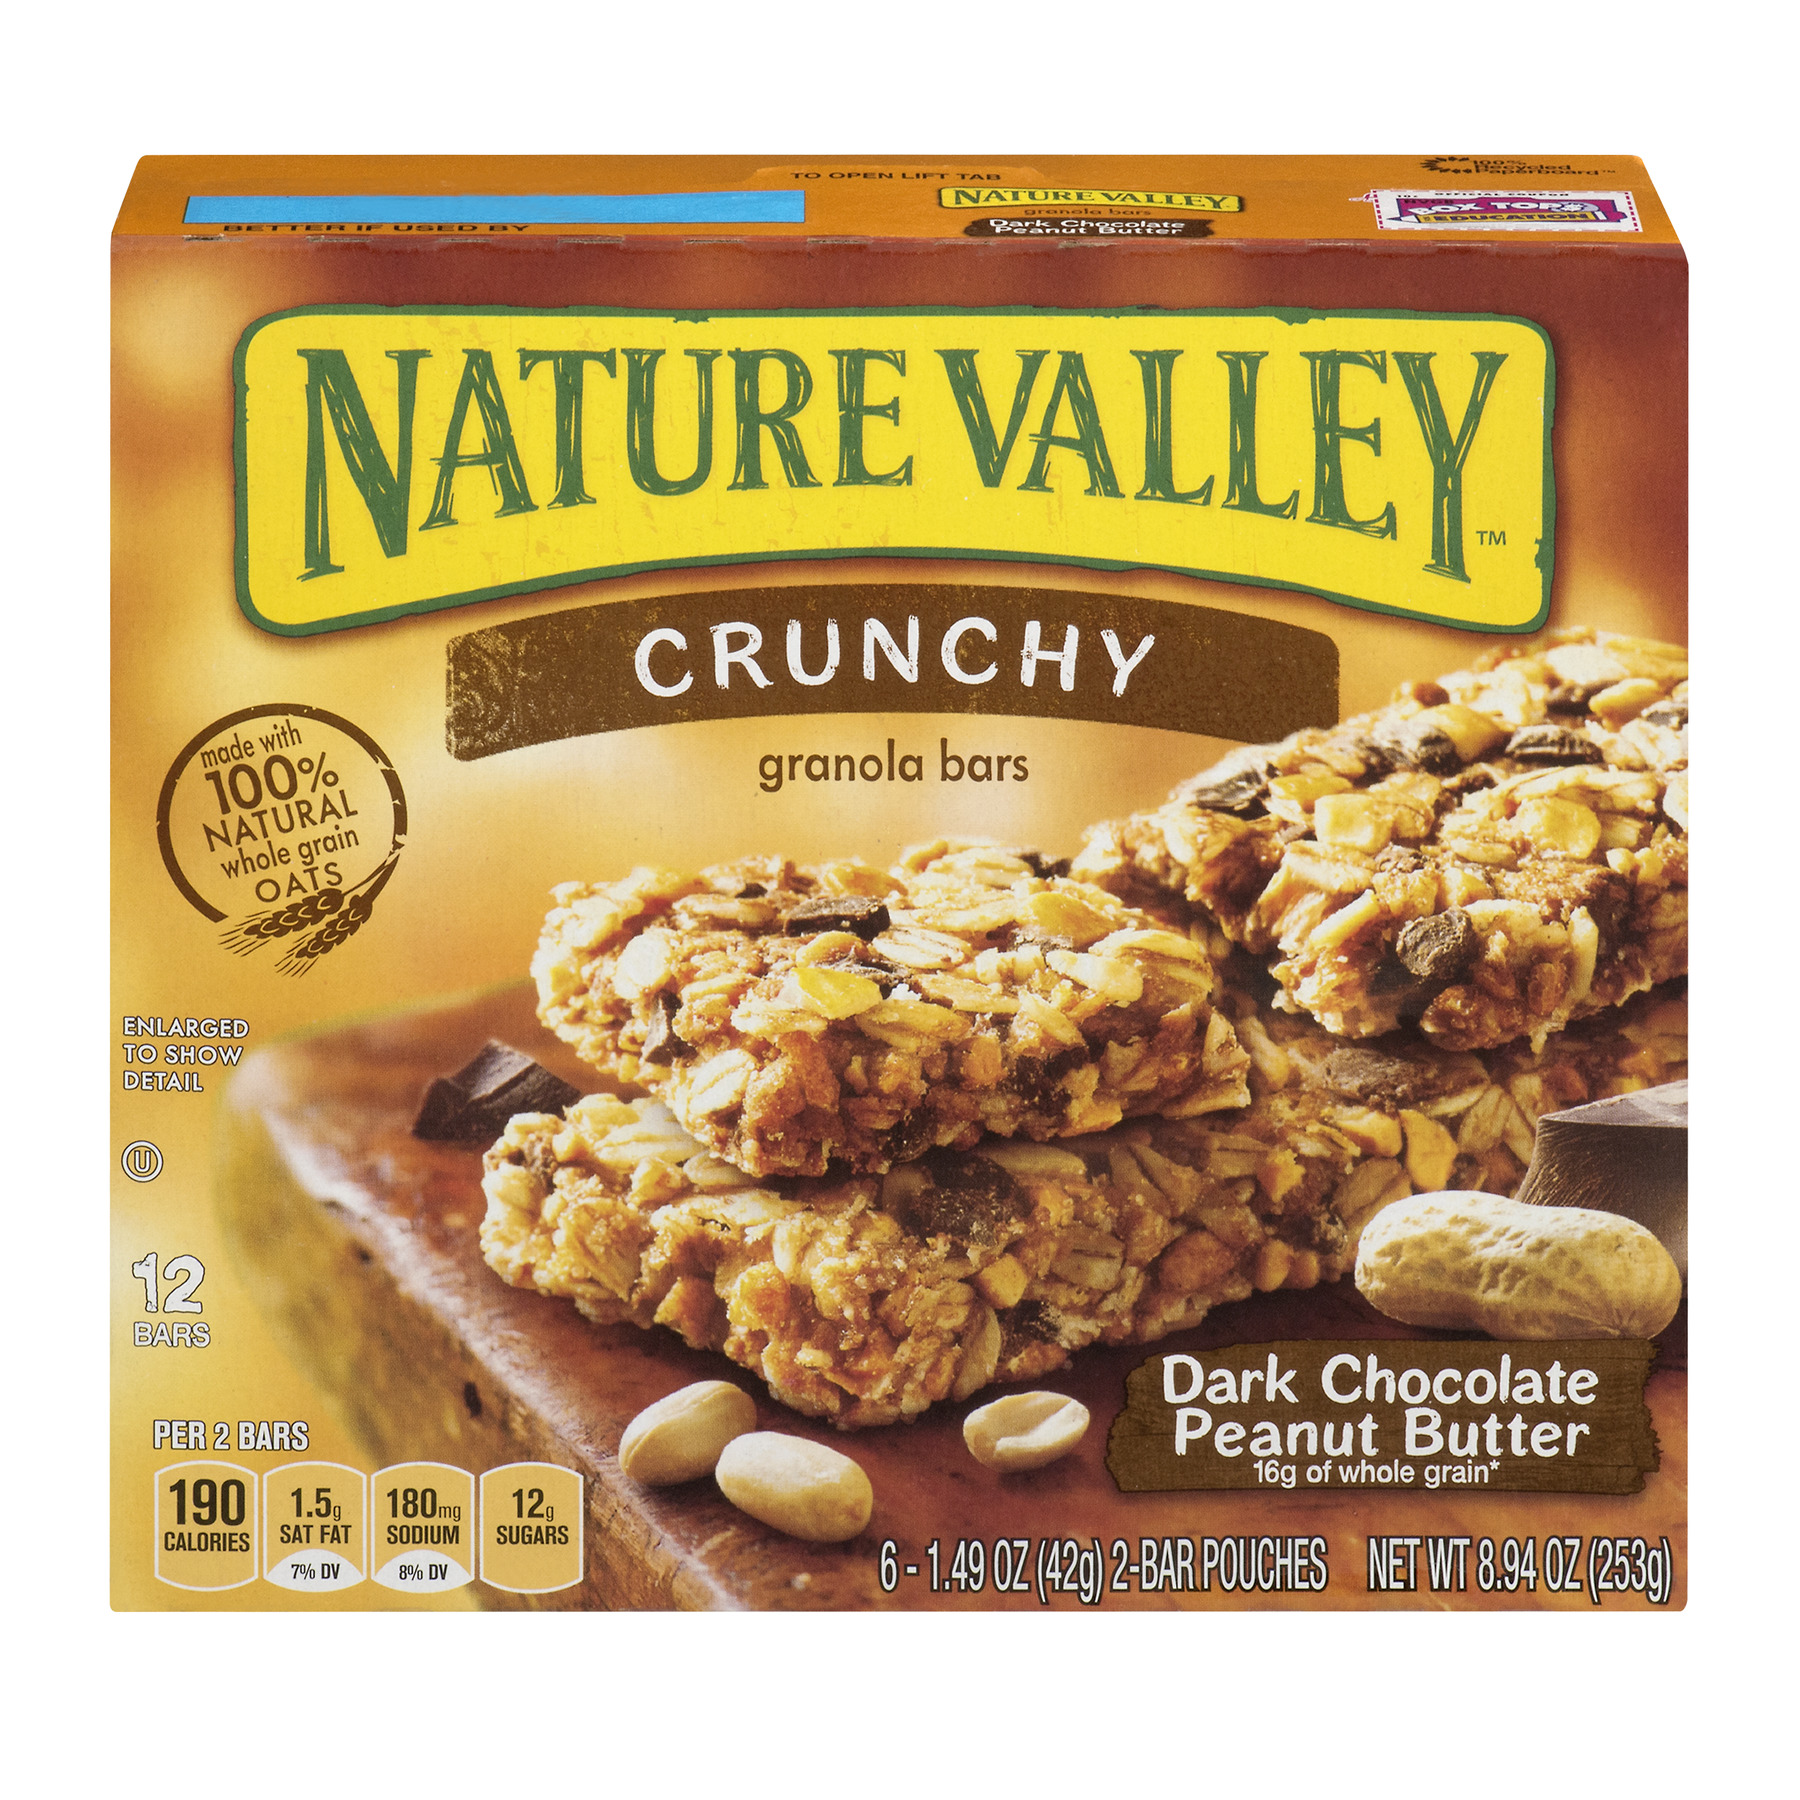 Nature Valley Crunchy Granola Bar Dark Chocolate Peanut Butter 8.94 oz